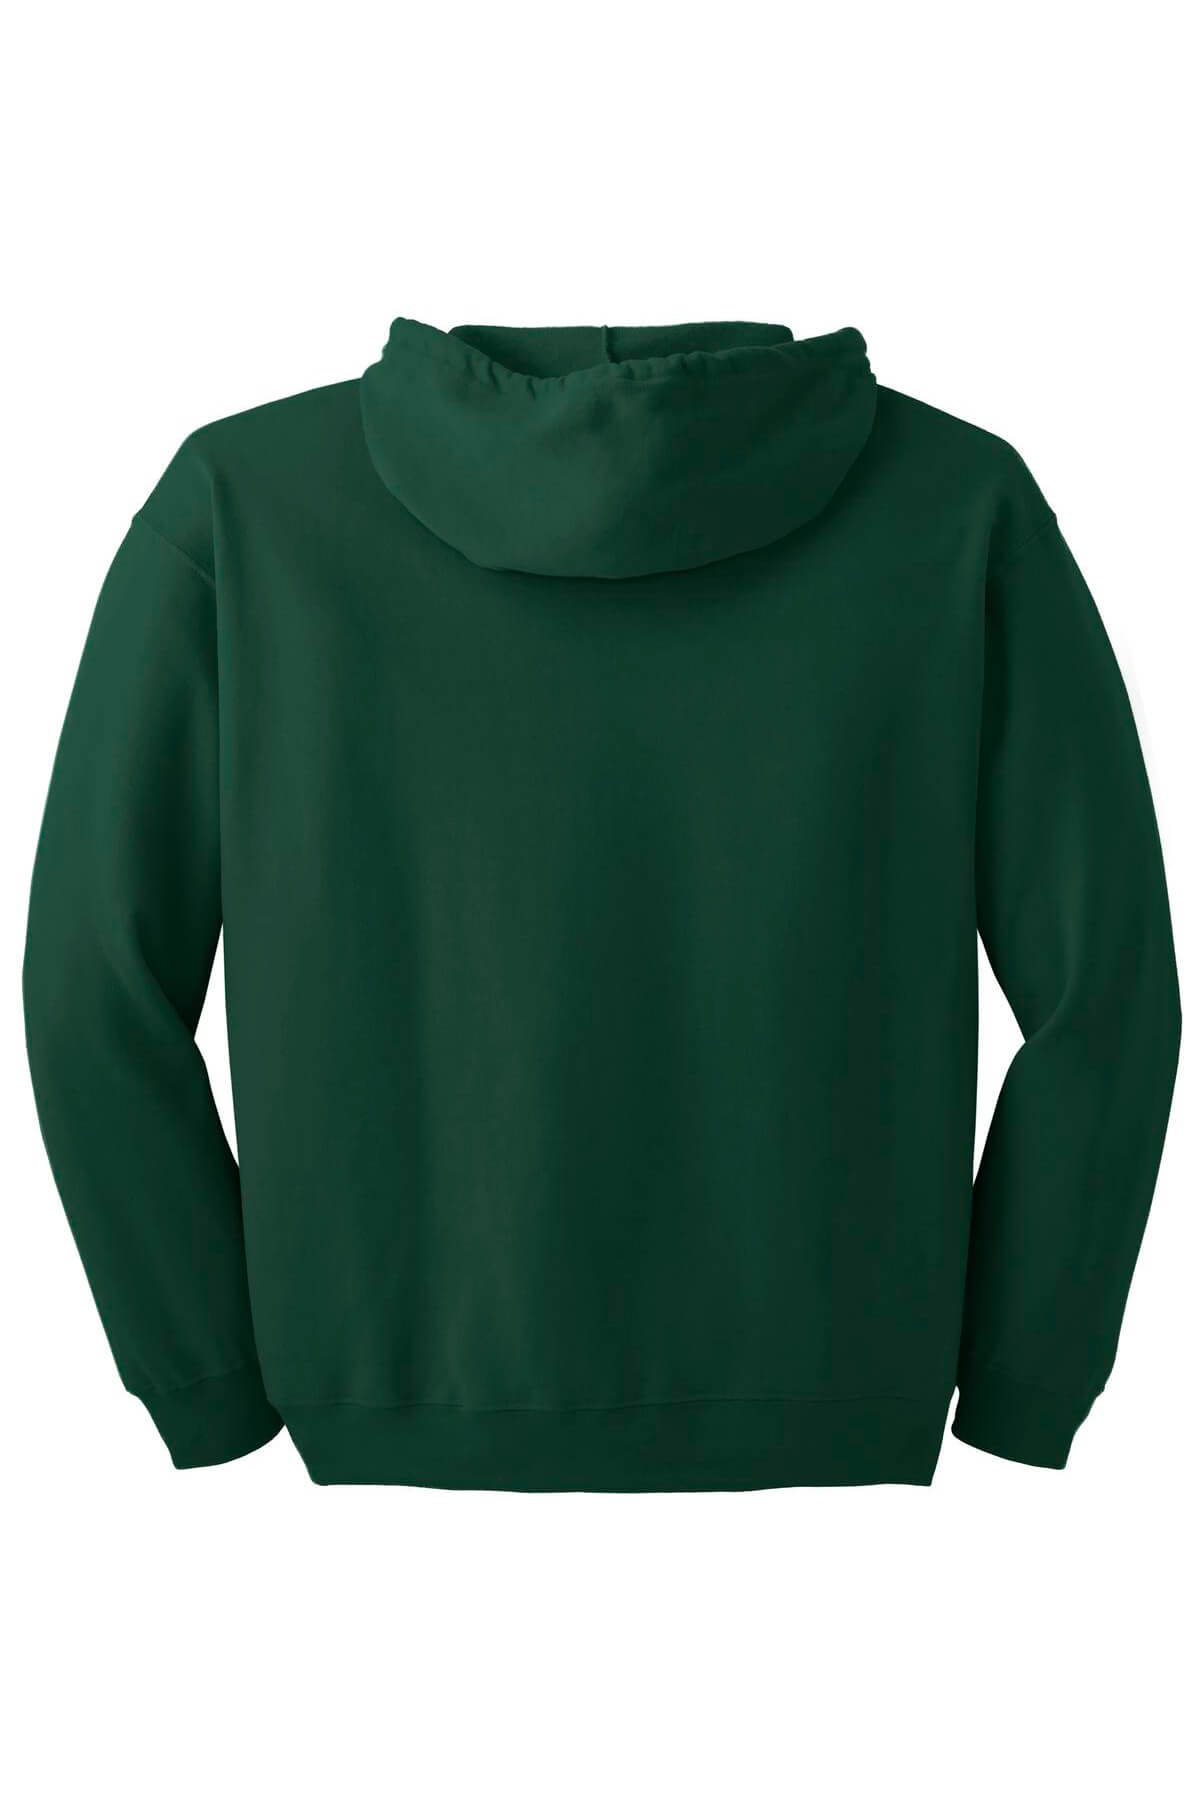 18600-forest-green-6